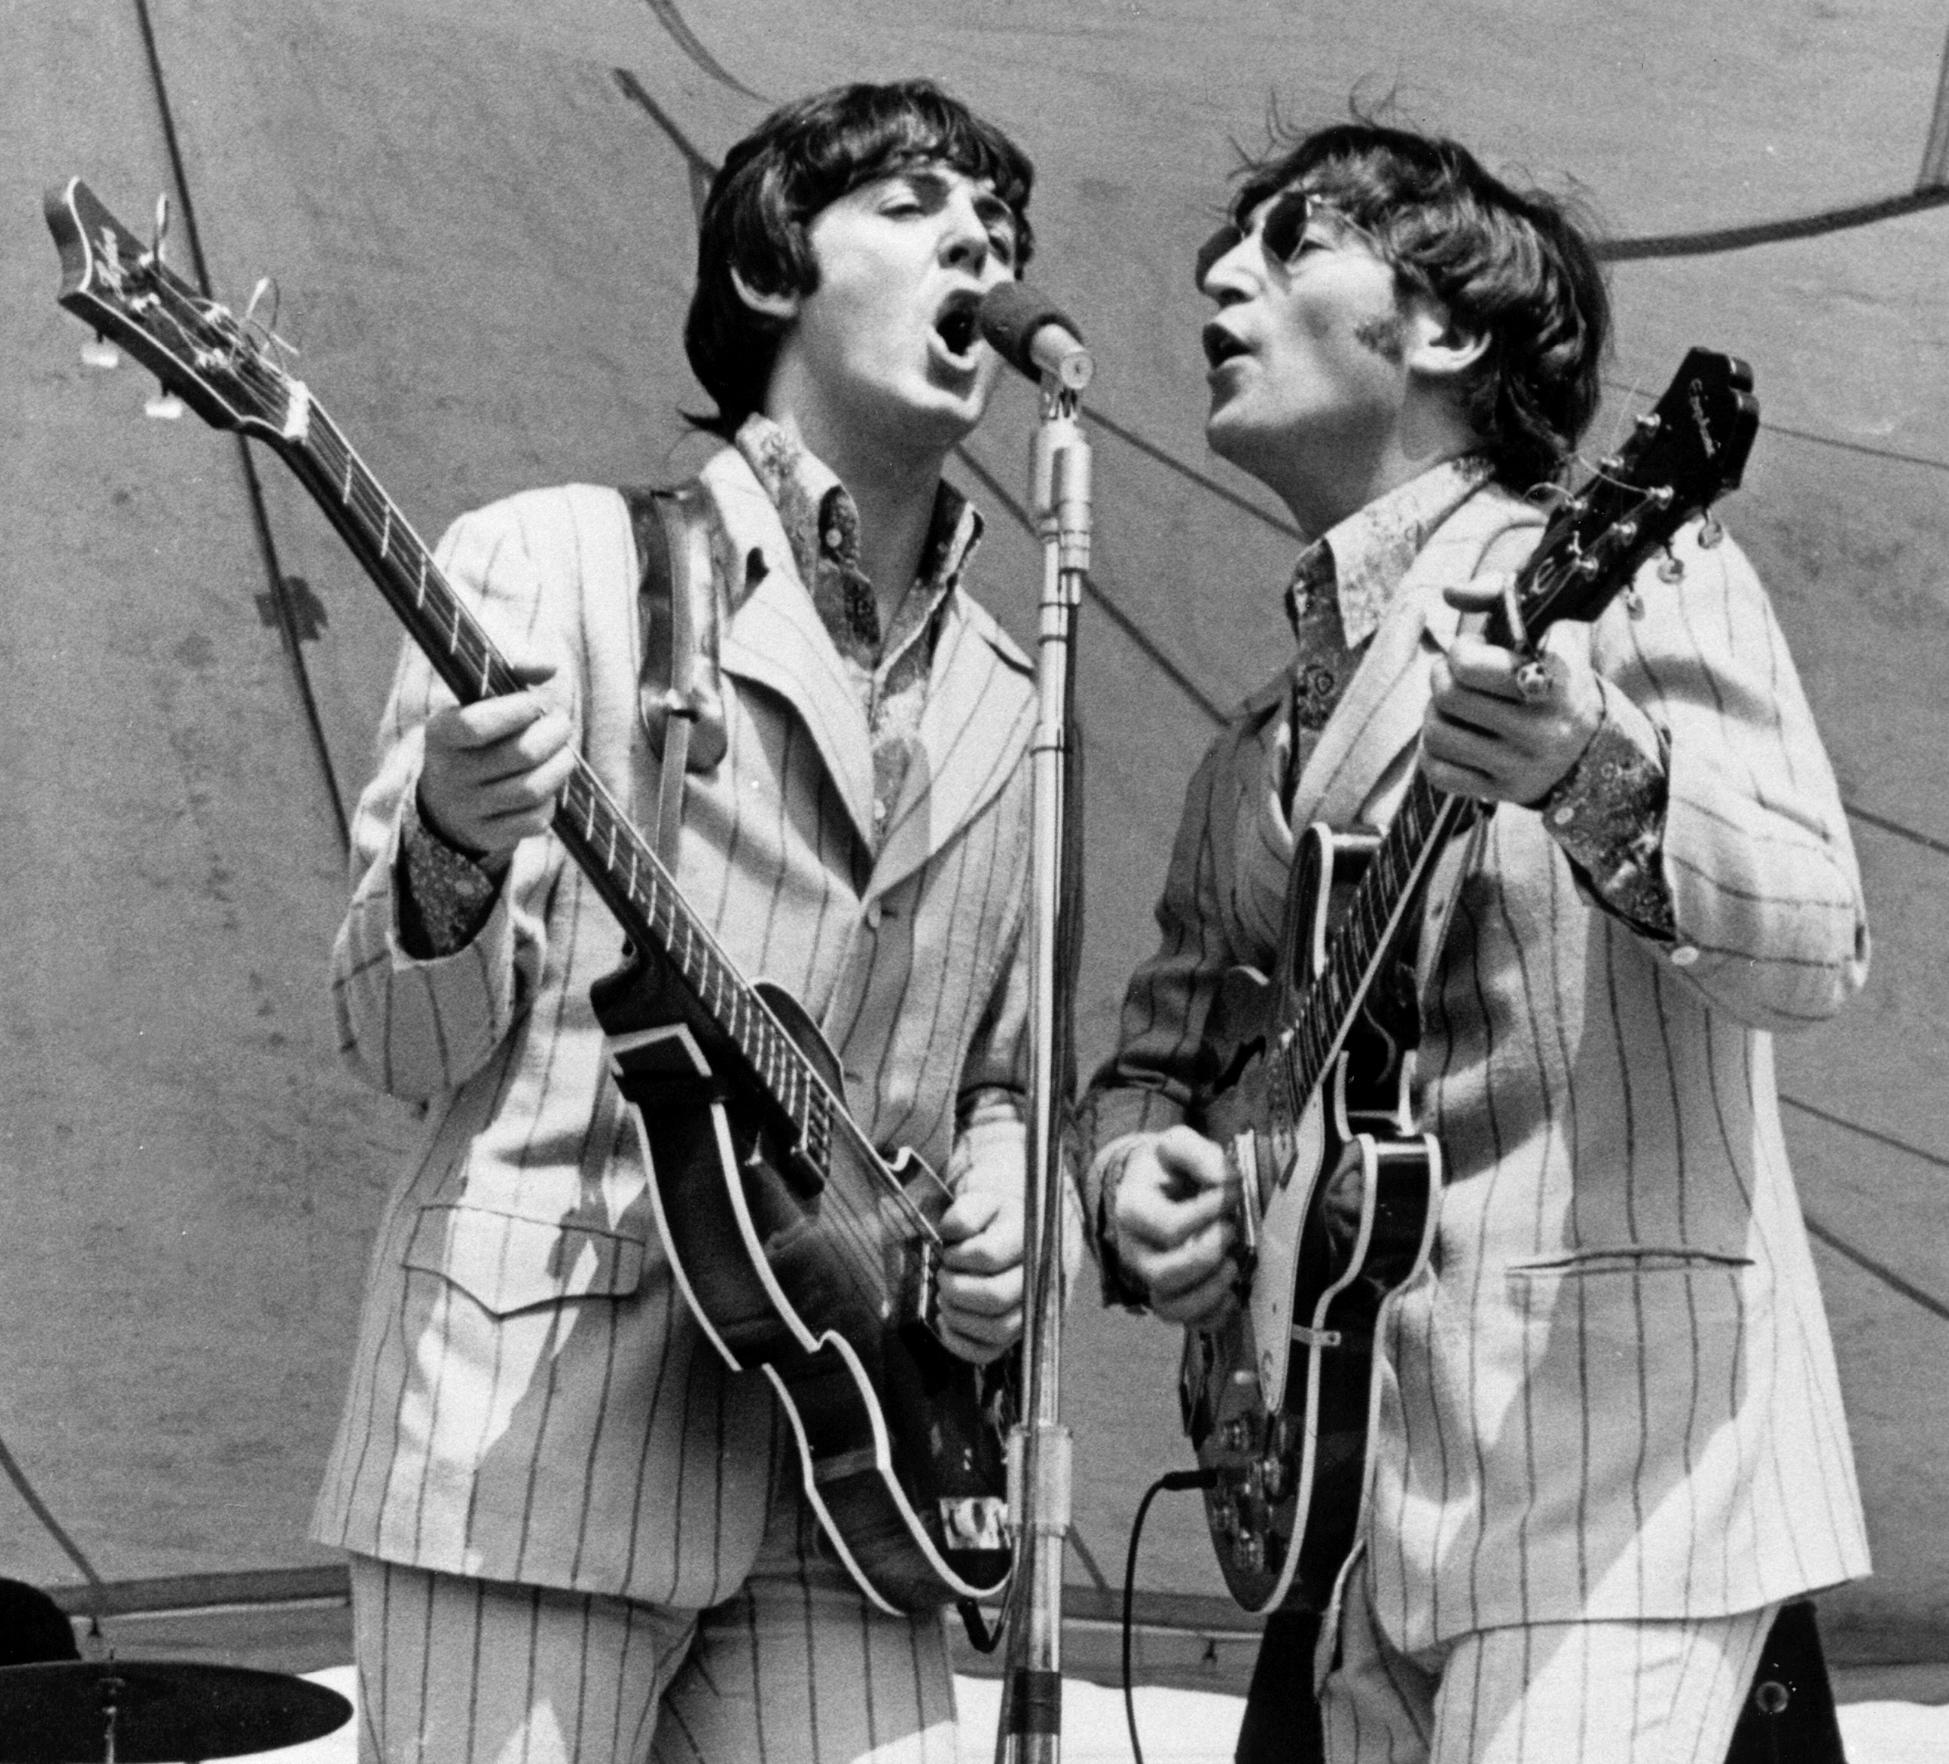 a report on the beatles the role of paul mccartney and john lennon Pop music icon john lennon was the legendary singer-songwriter who founded  the beatles  early life beatlemania the beatles break up solo career:  he  met paul mccartney in 1957 and invited mccartney to join his music group   hall of fame in 1987, and the rock and roll hall of fame in 1994.